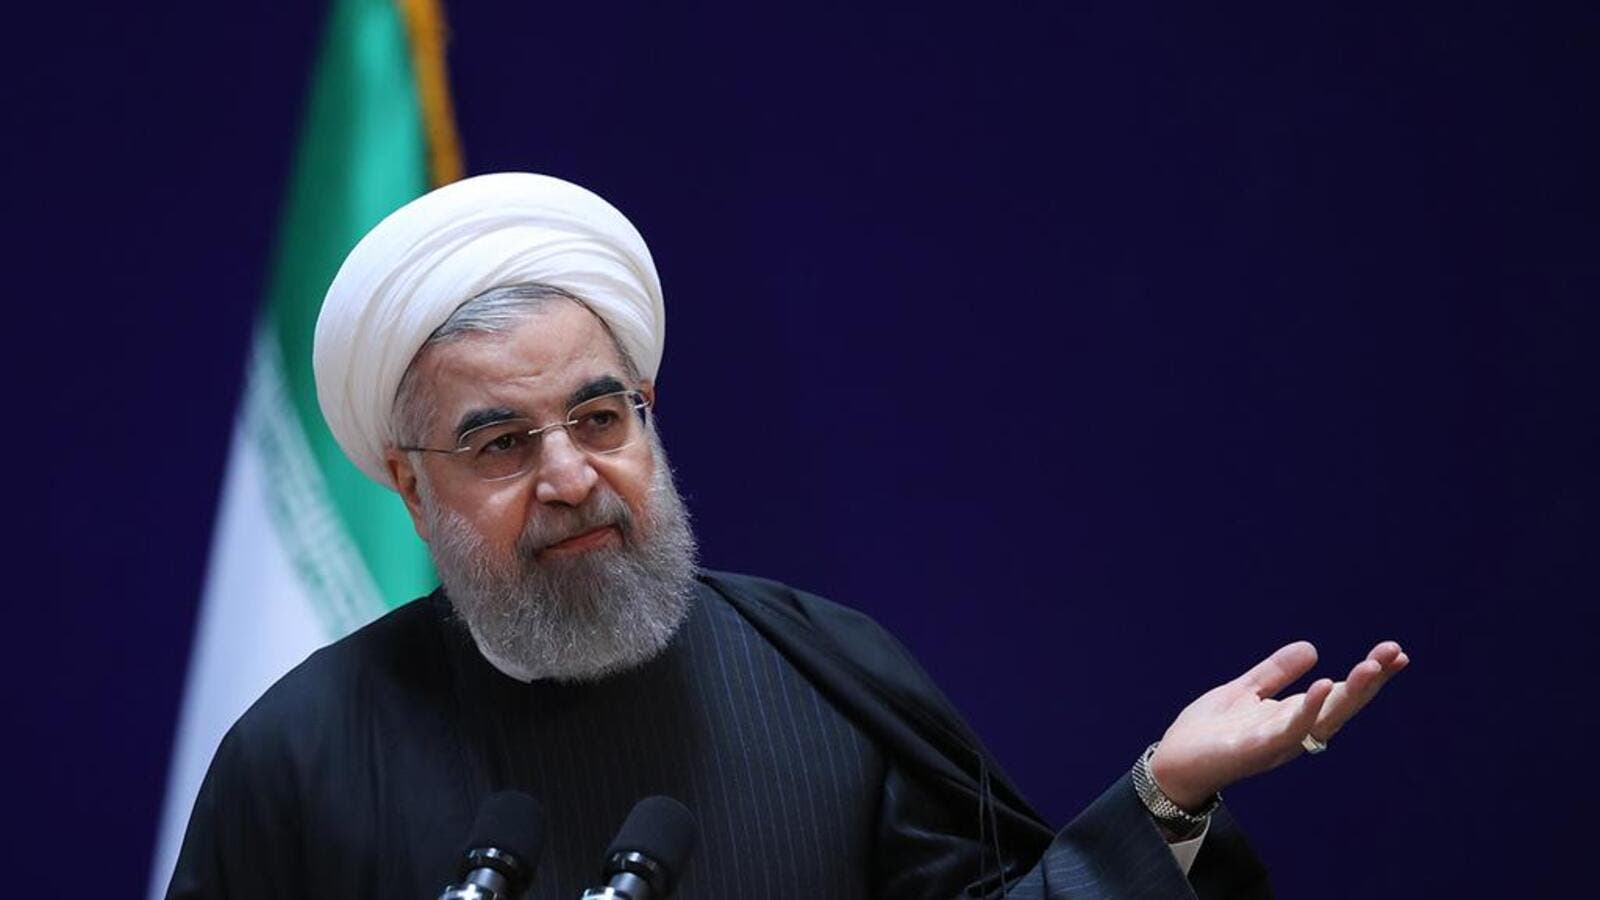 Iranian president Hassan Rouhani speaks at a conference in Tehran, on January 28.  (AFP/ File Photo)